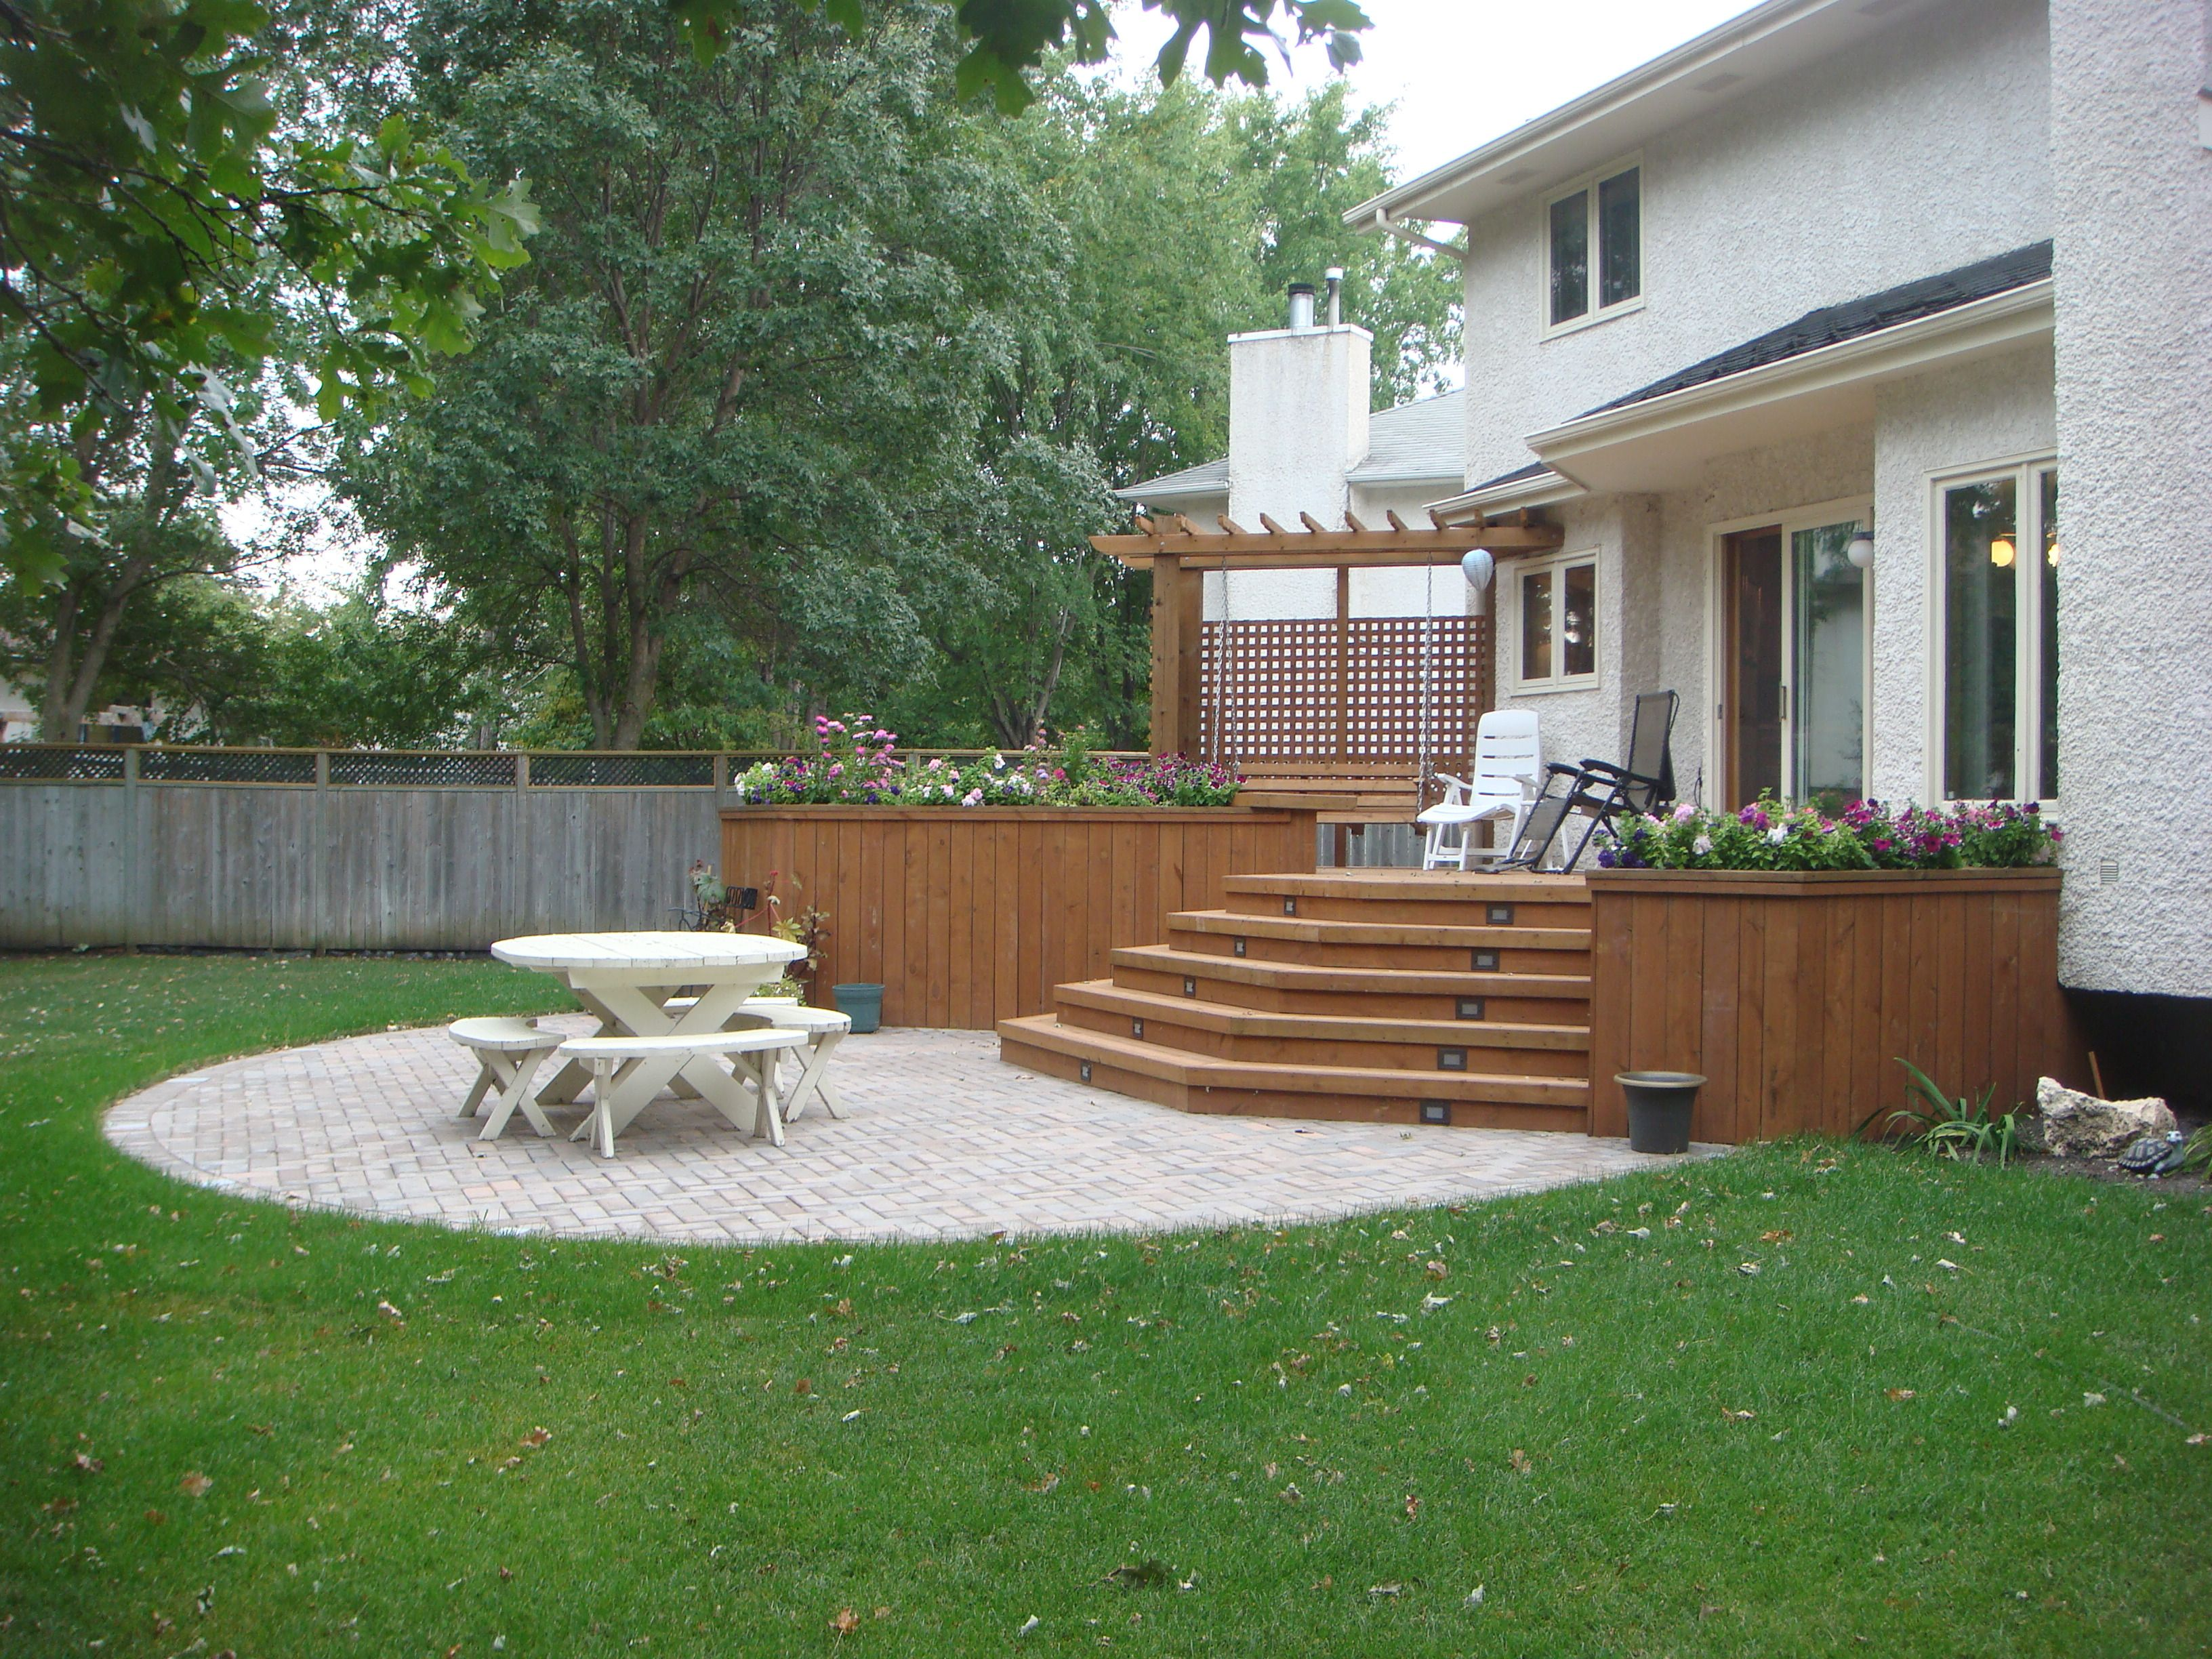 Patio | ... Built In Swing And Planters. Patio With Autumn Brown